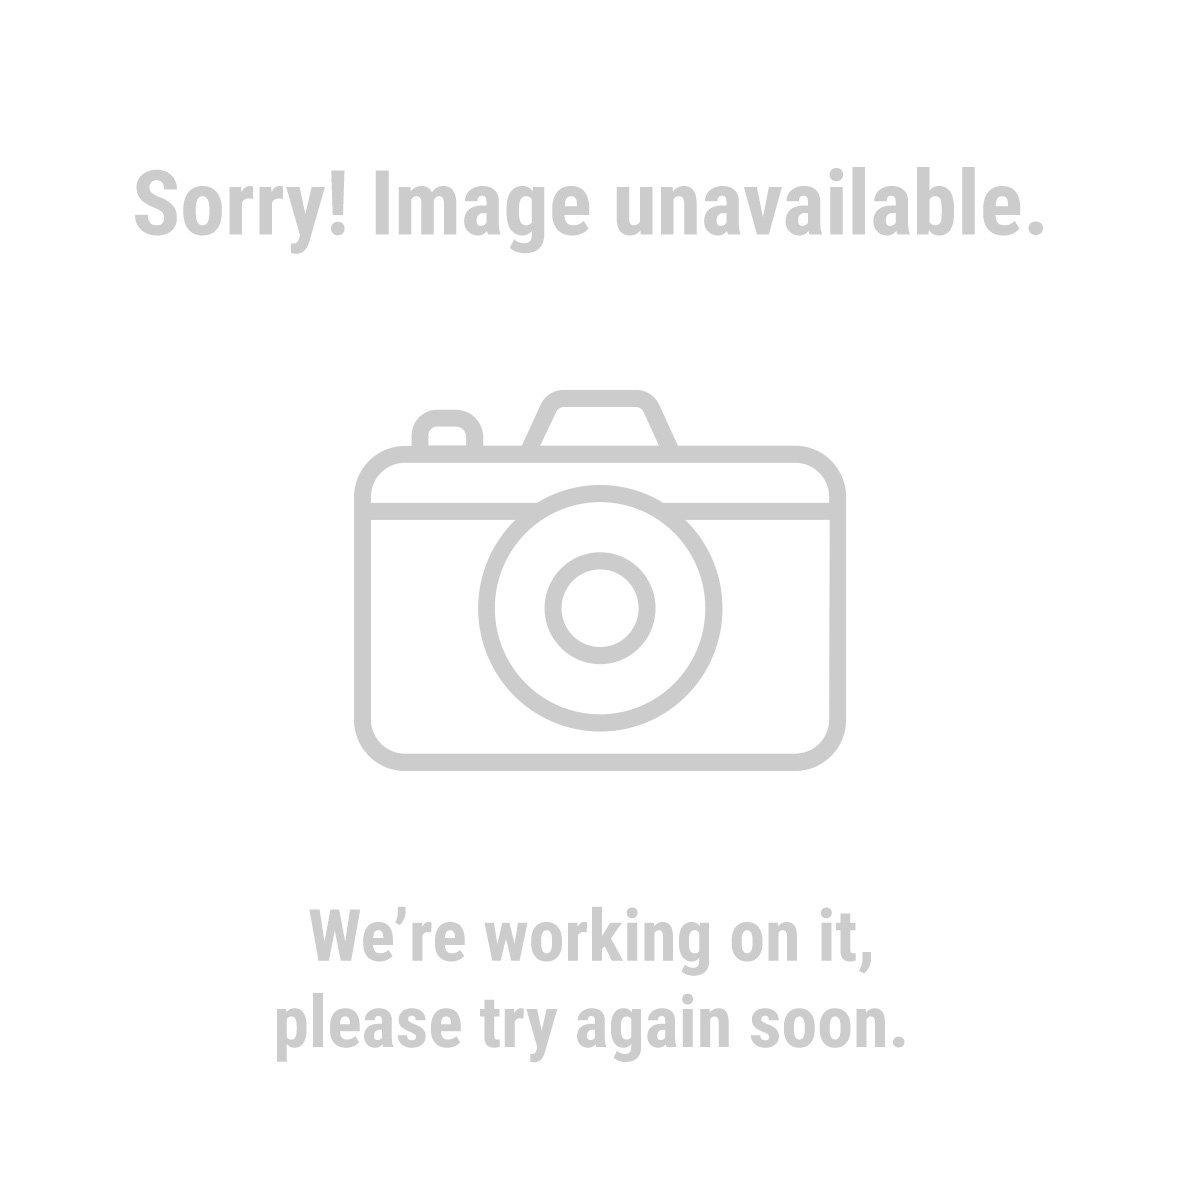 Western Safety 99691 Cold Resistant PVC Gloves in Orange, Large